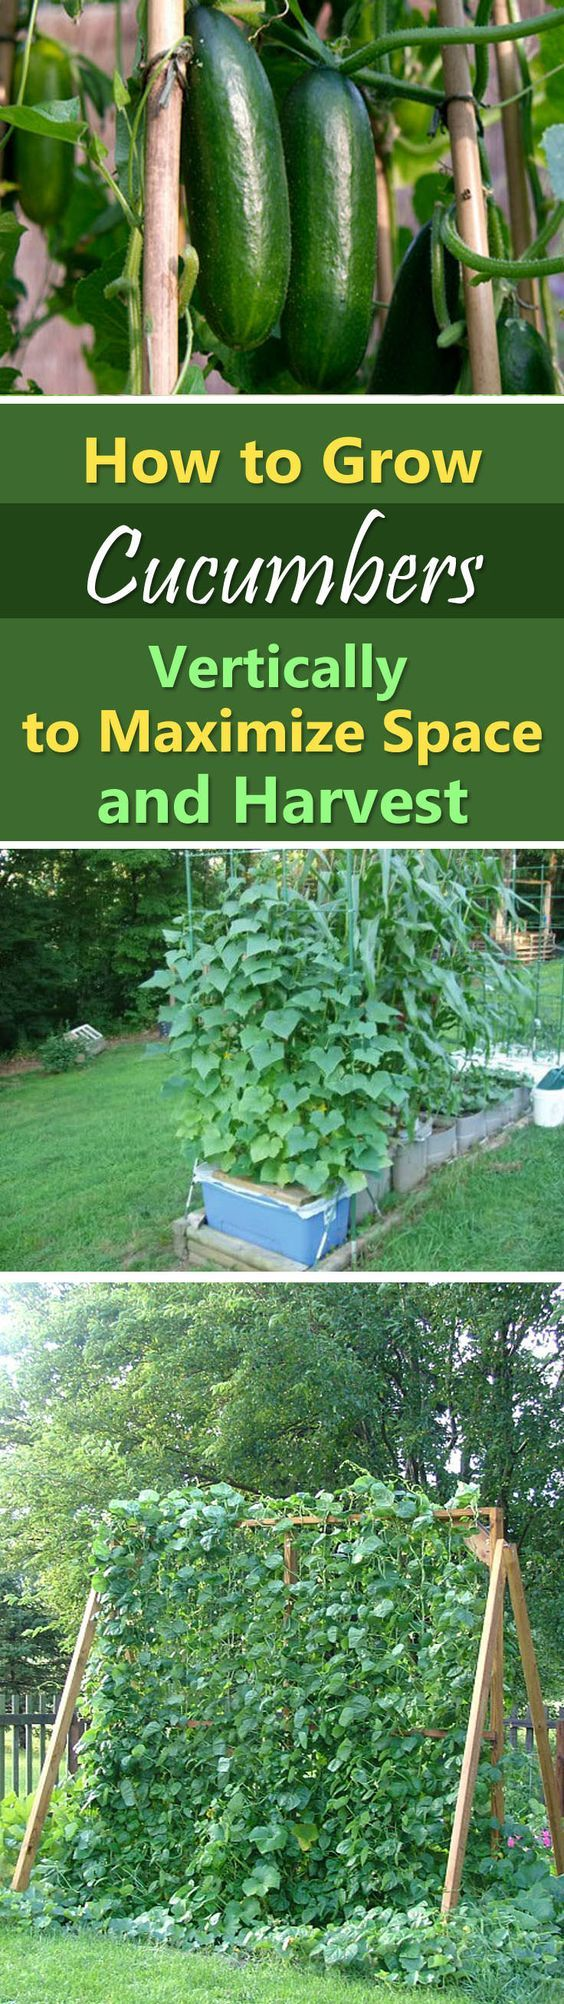 Growing Cucumbers Vertically | How to Grow Cucumbers in Small Garden: